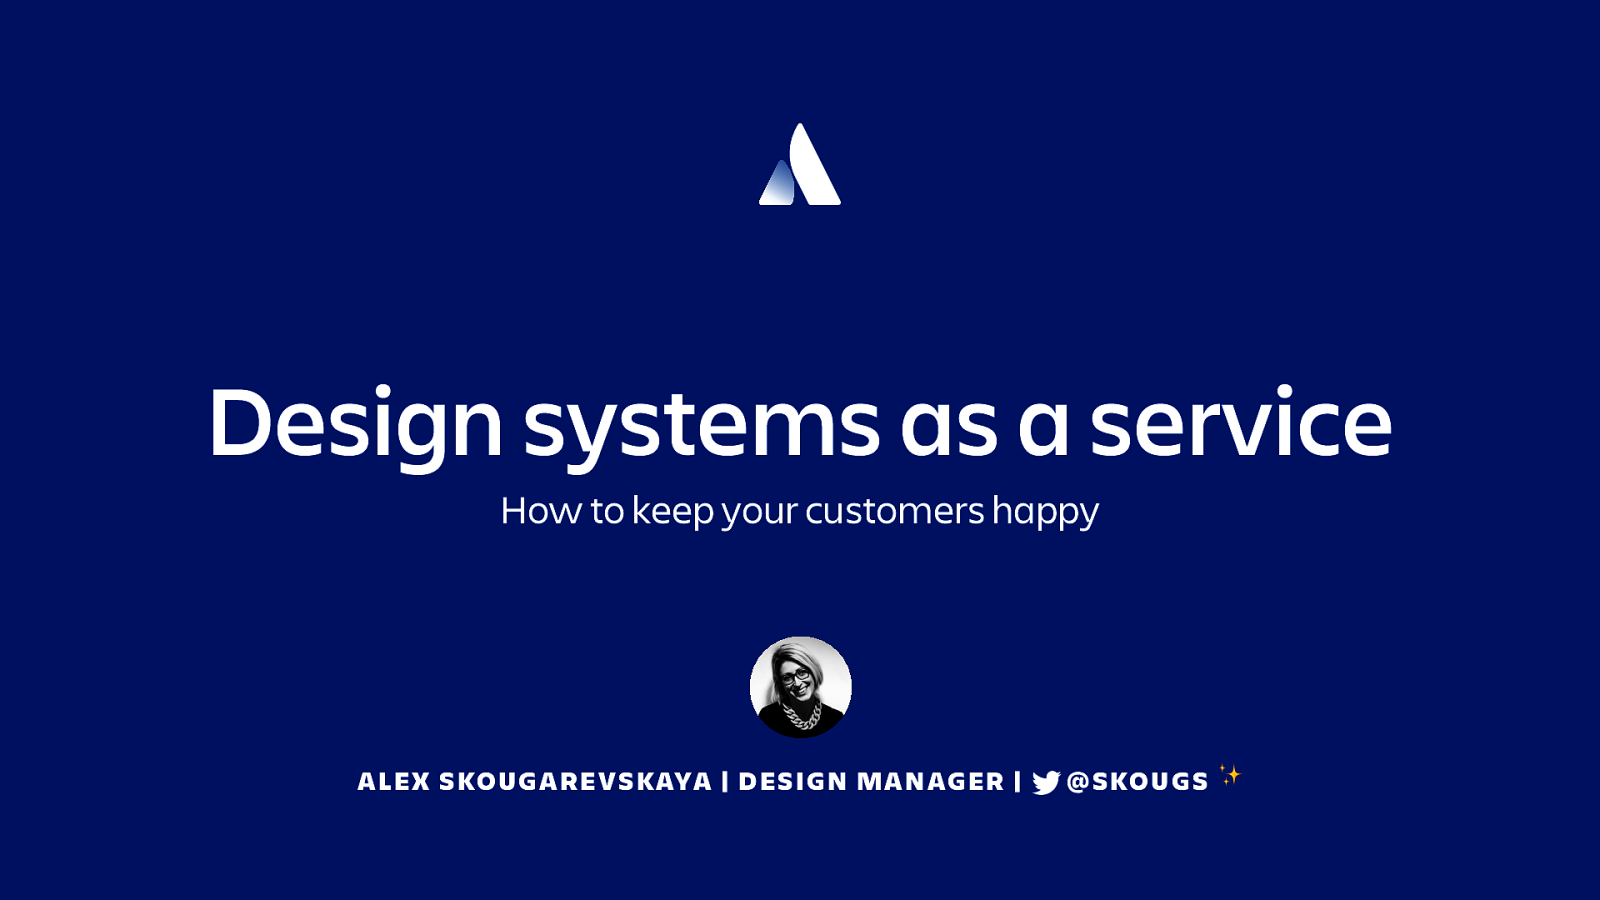 Design systems as a service: How to keep your customers happy